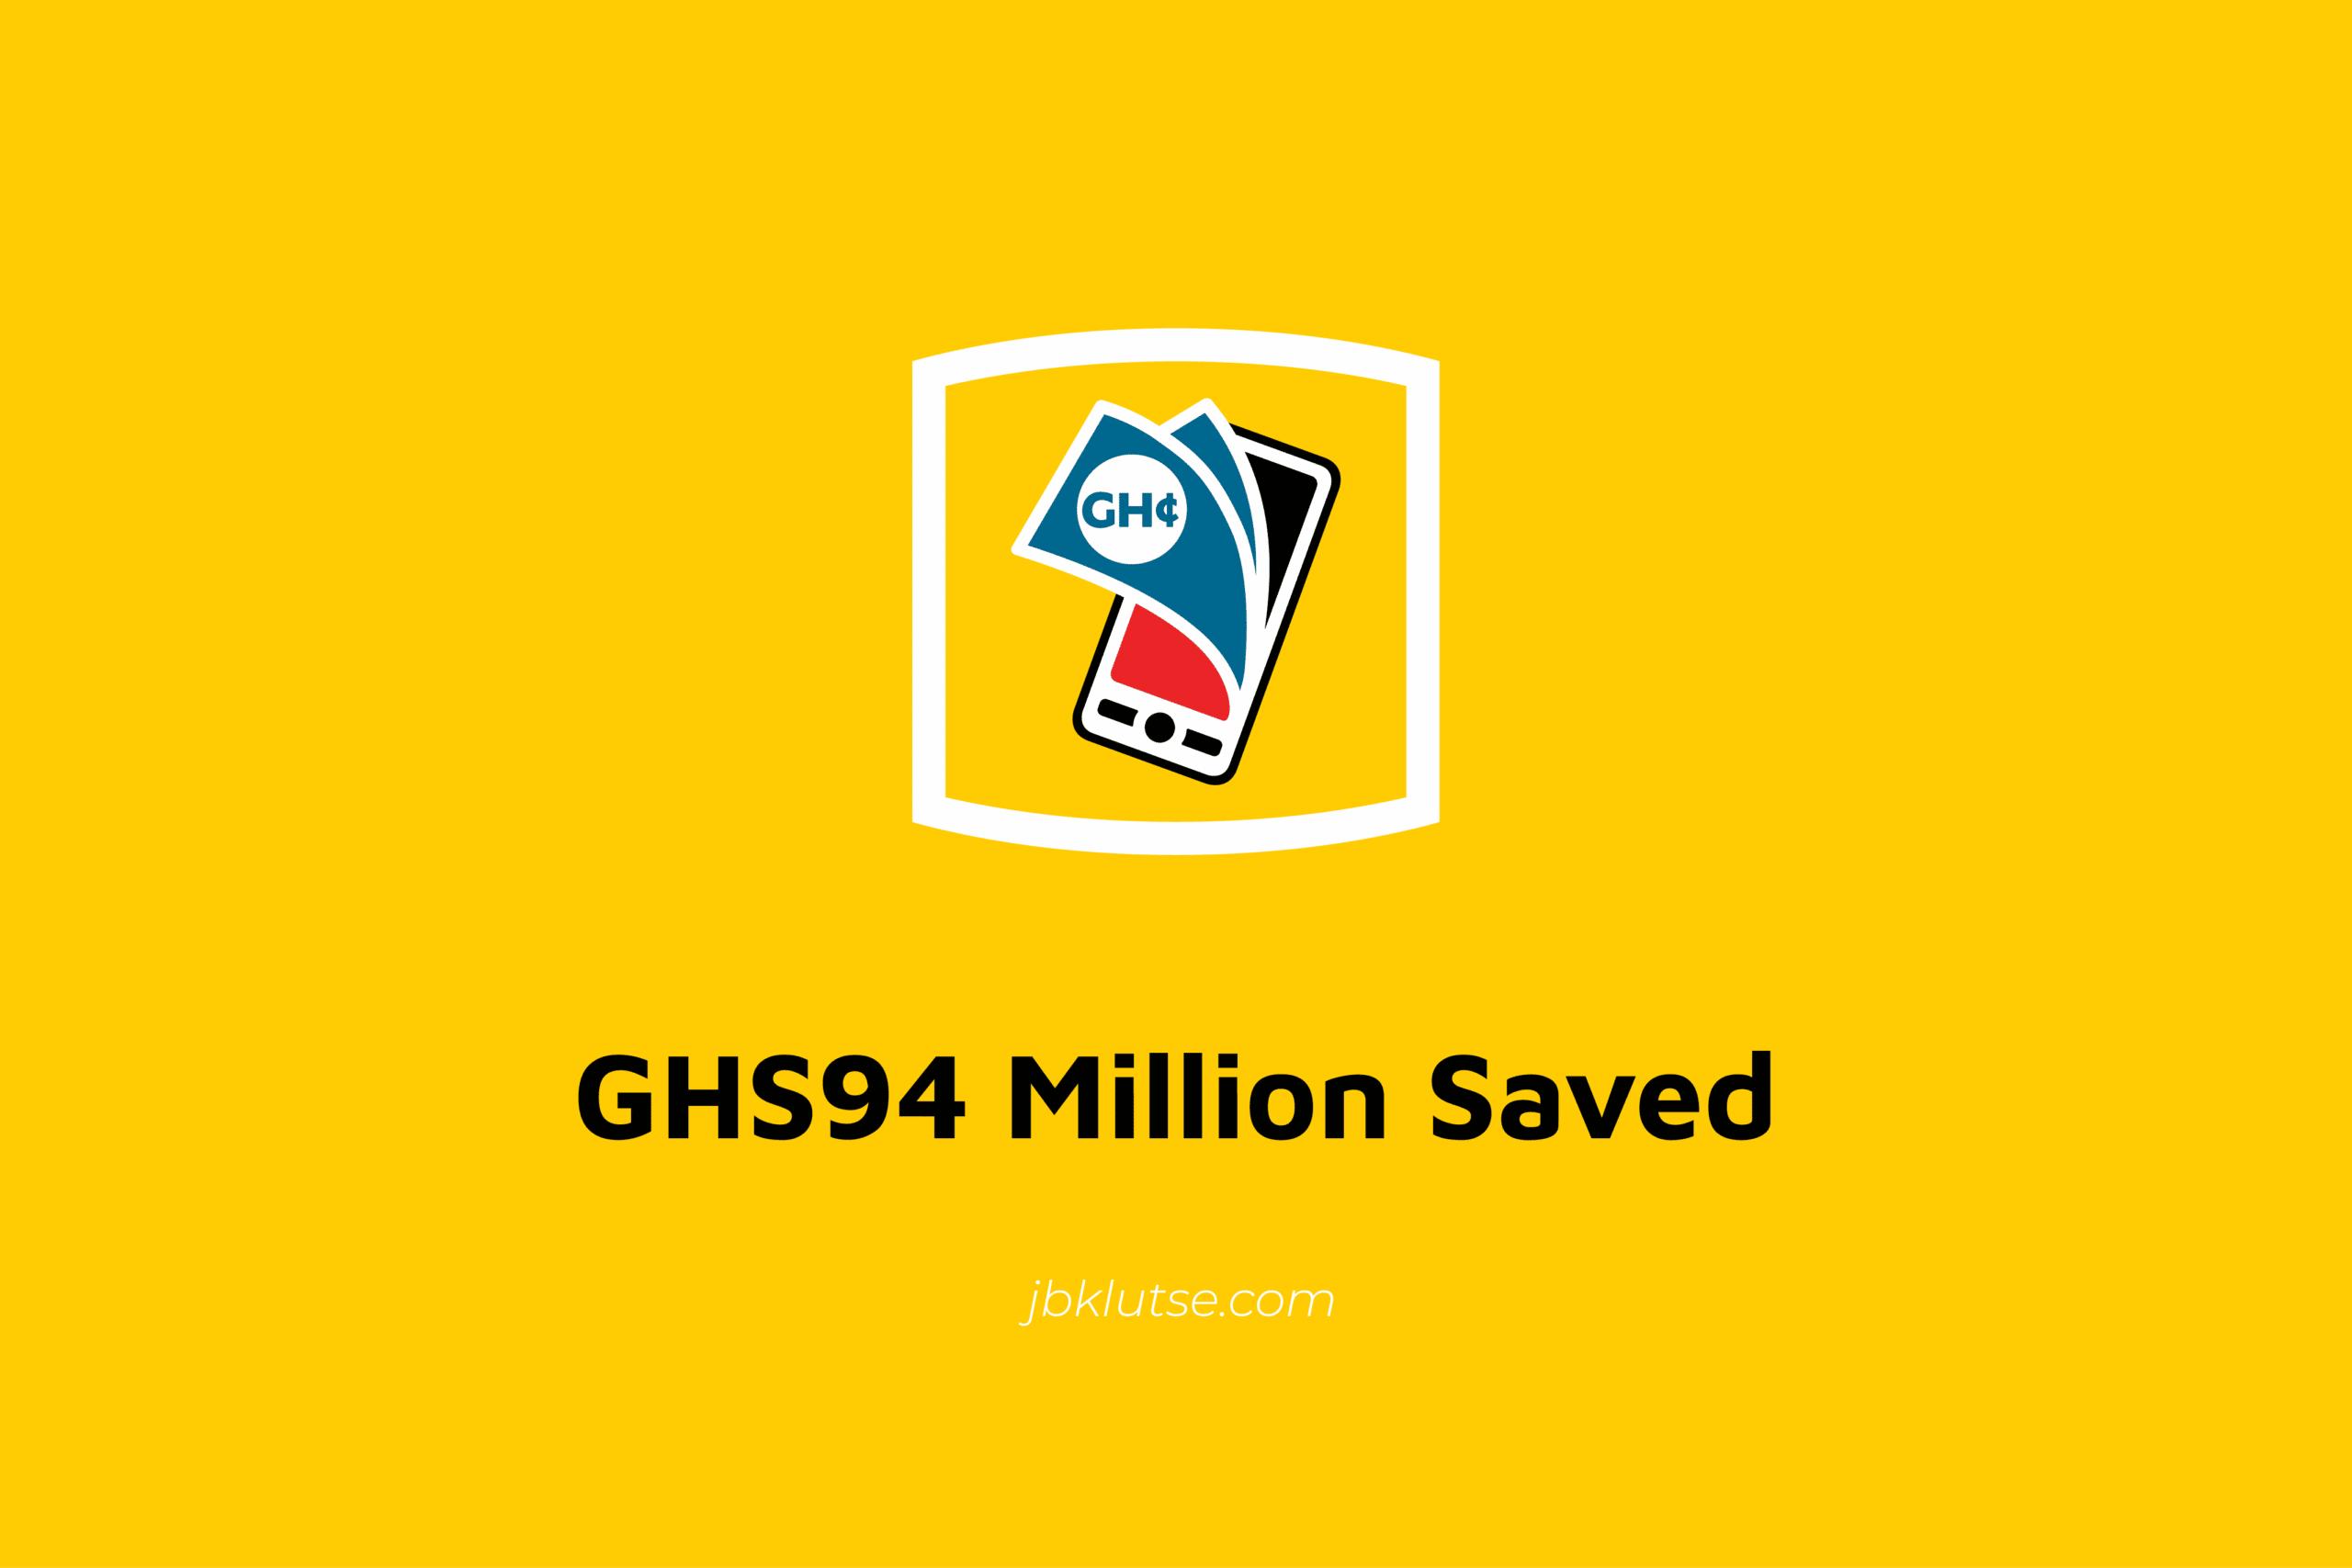 MTN MoMo customers saved GHS94 million in 2020